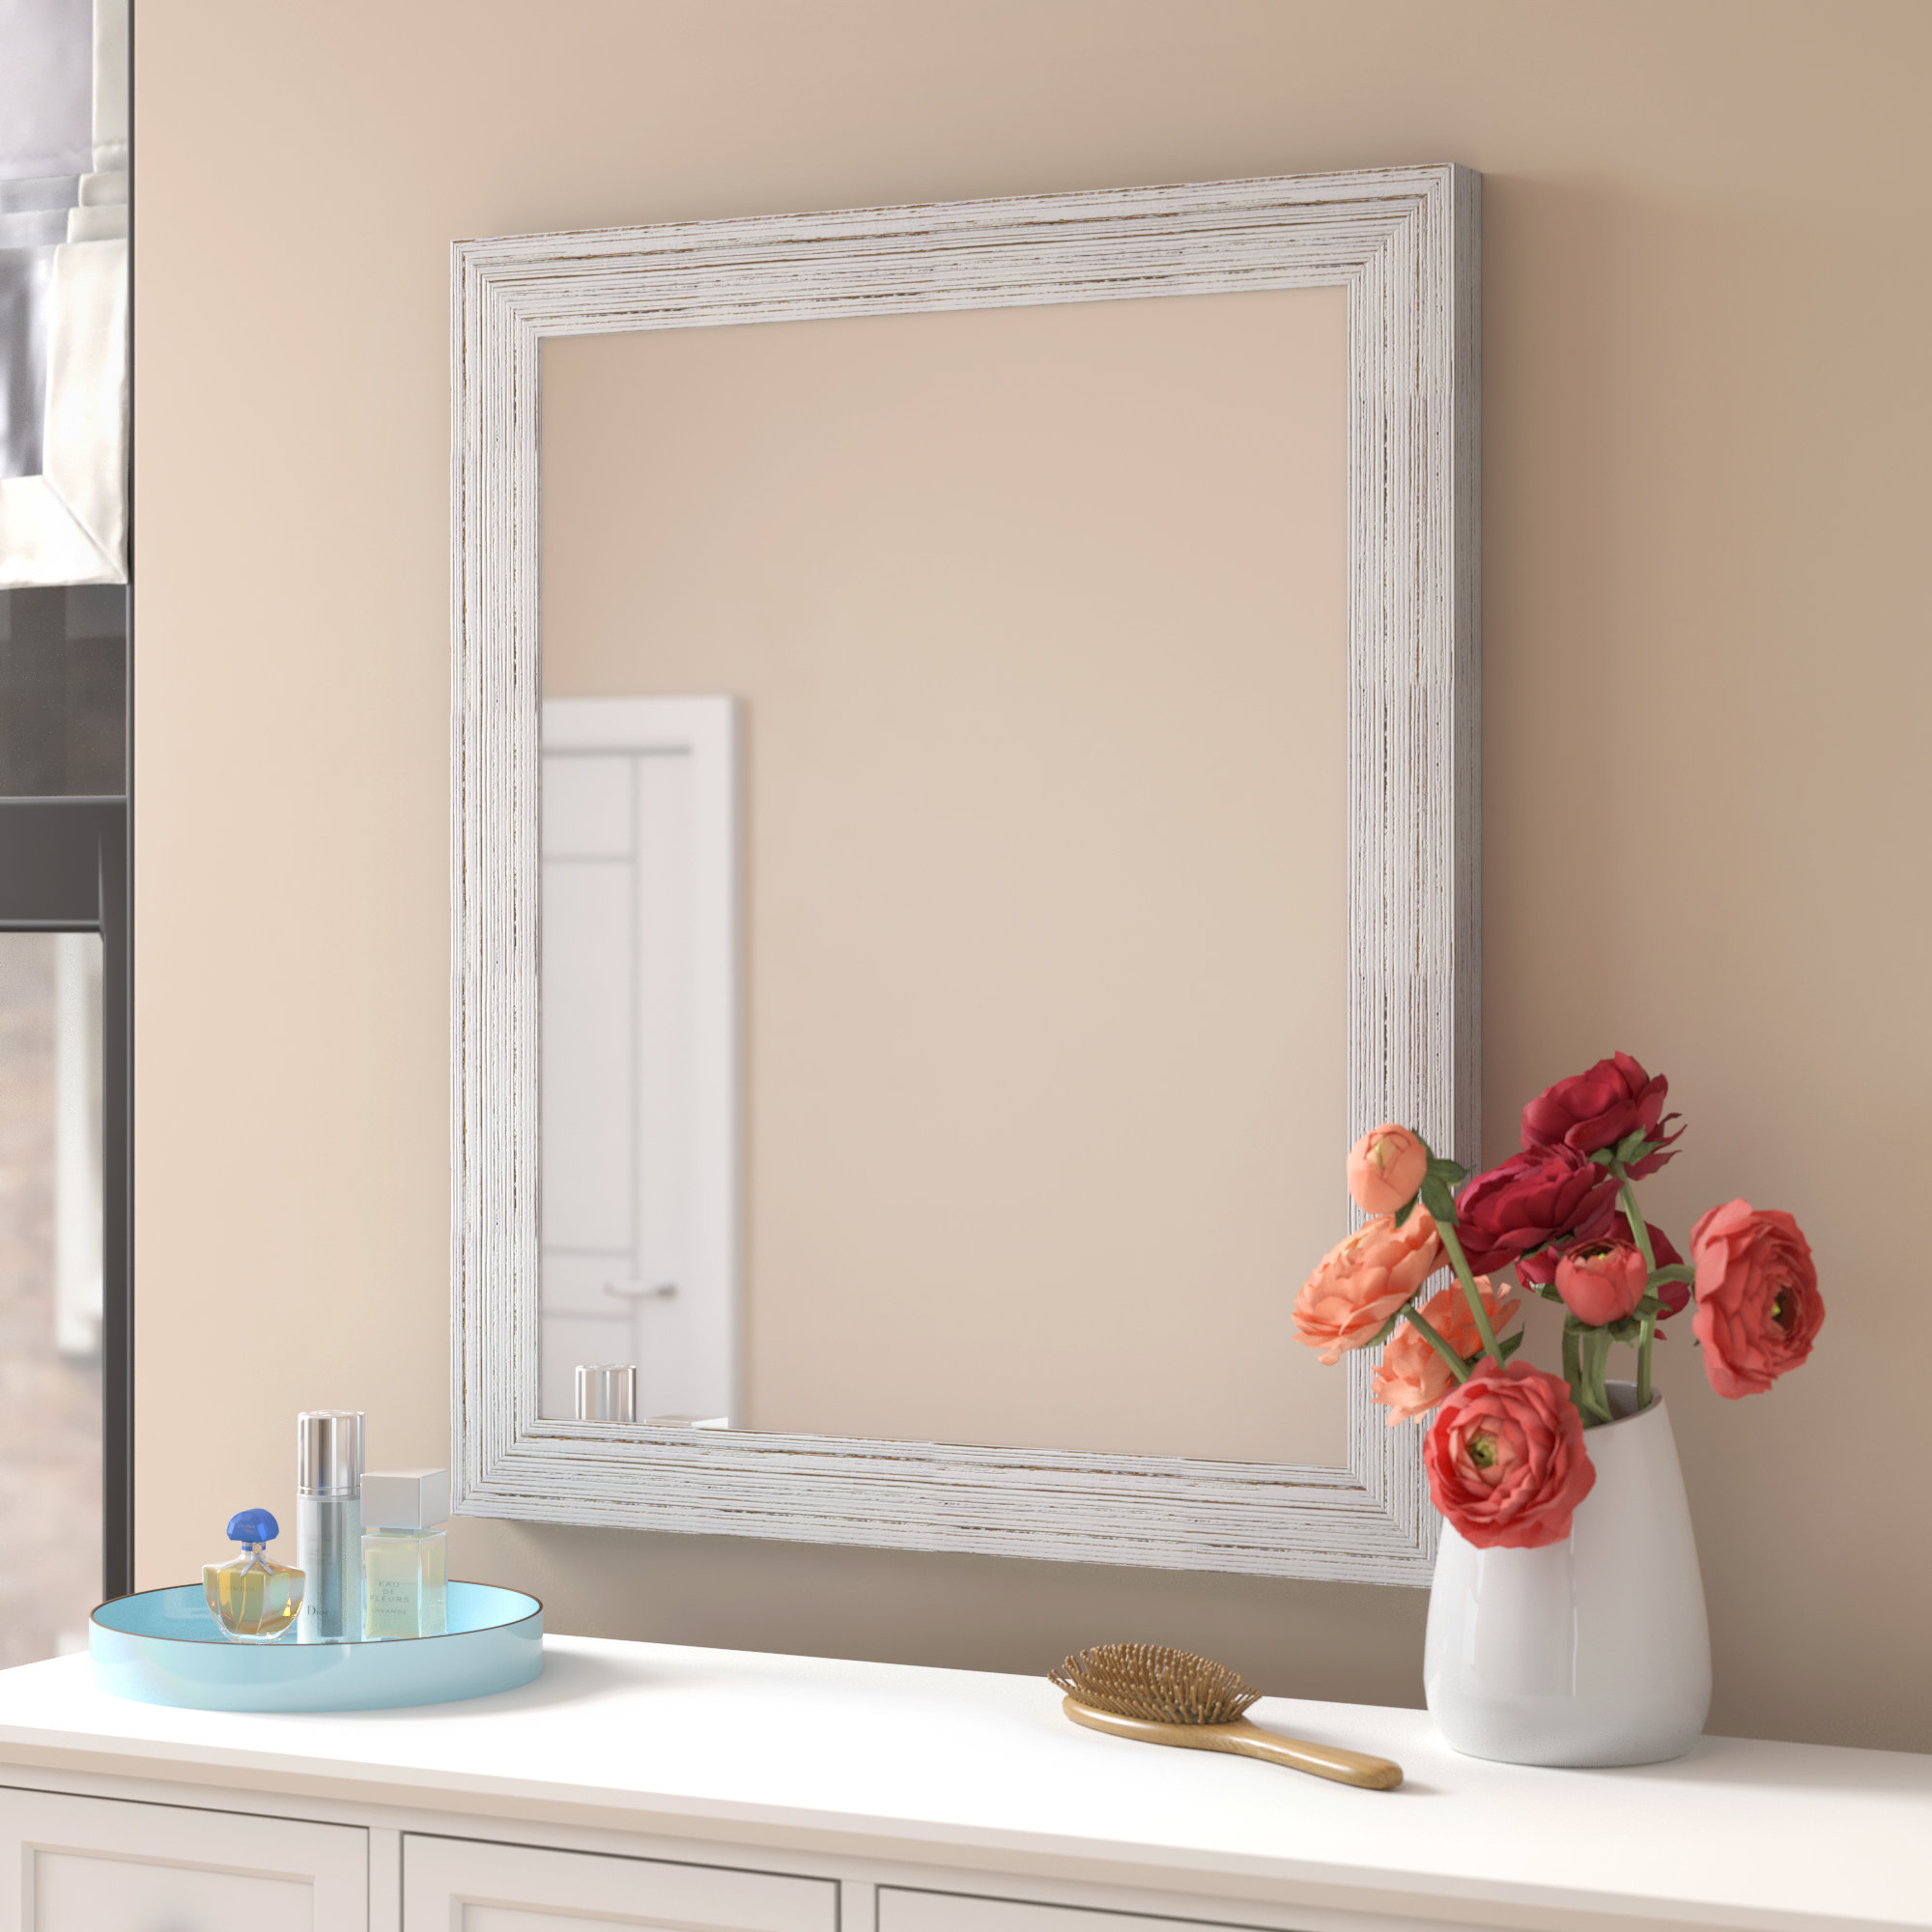 Charlton Home Kimzey Bathroom/vanity Mirror Pertaining To Burgoyne Vanity Mirrors (View 12 of 20)